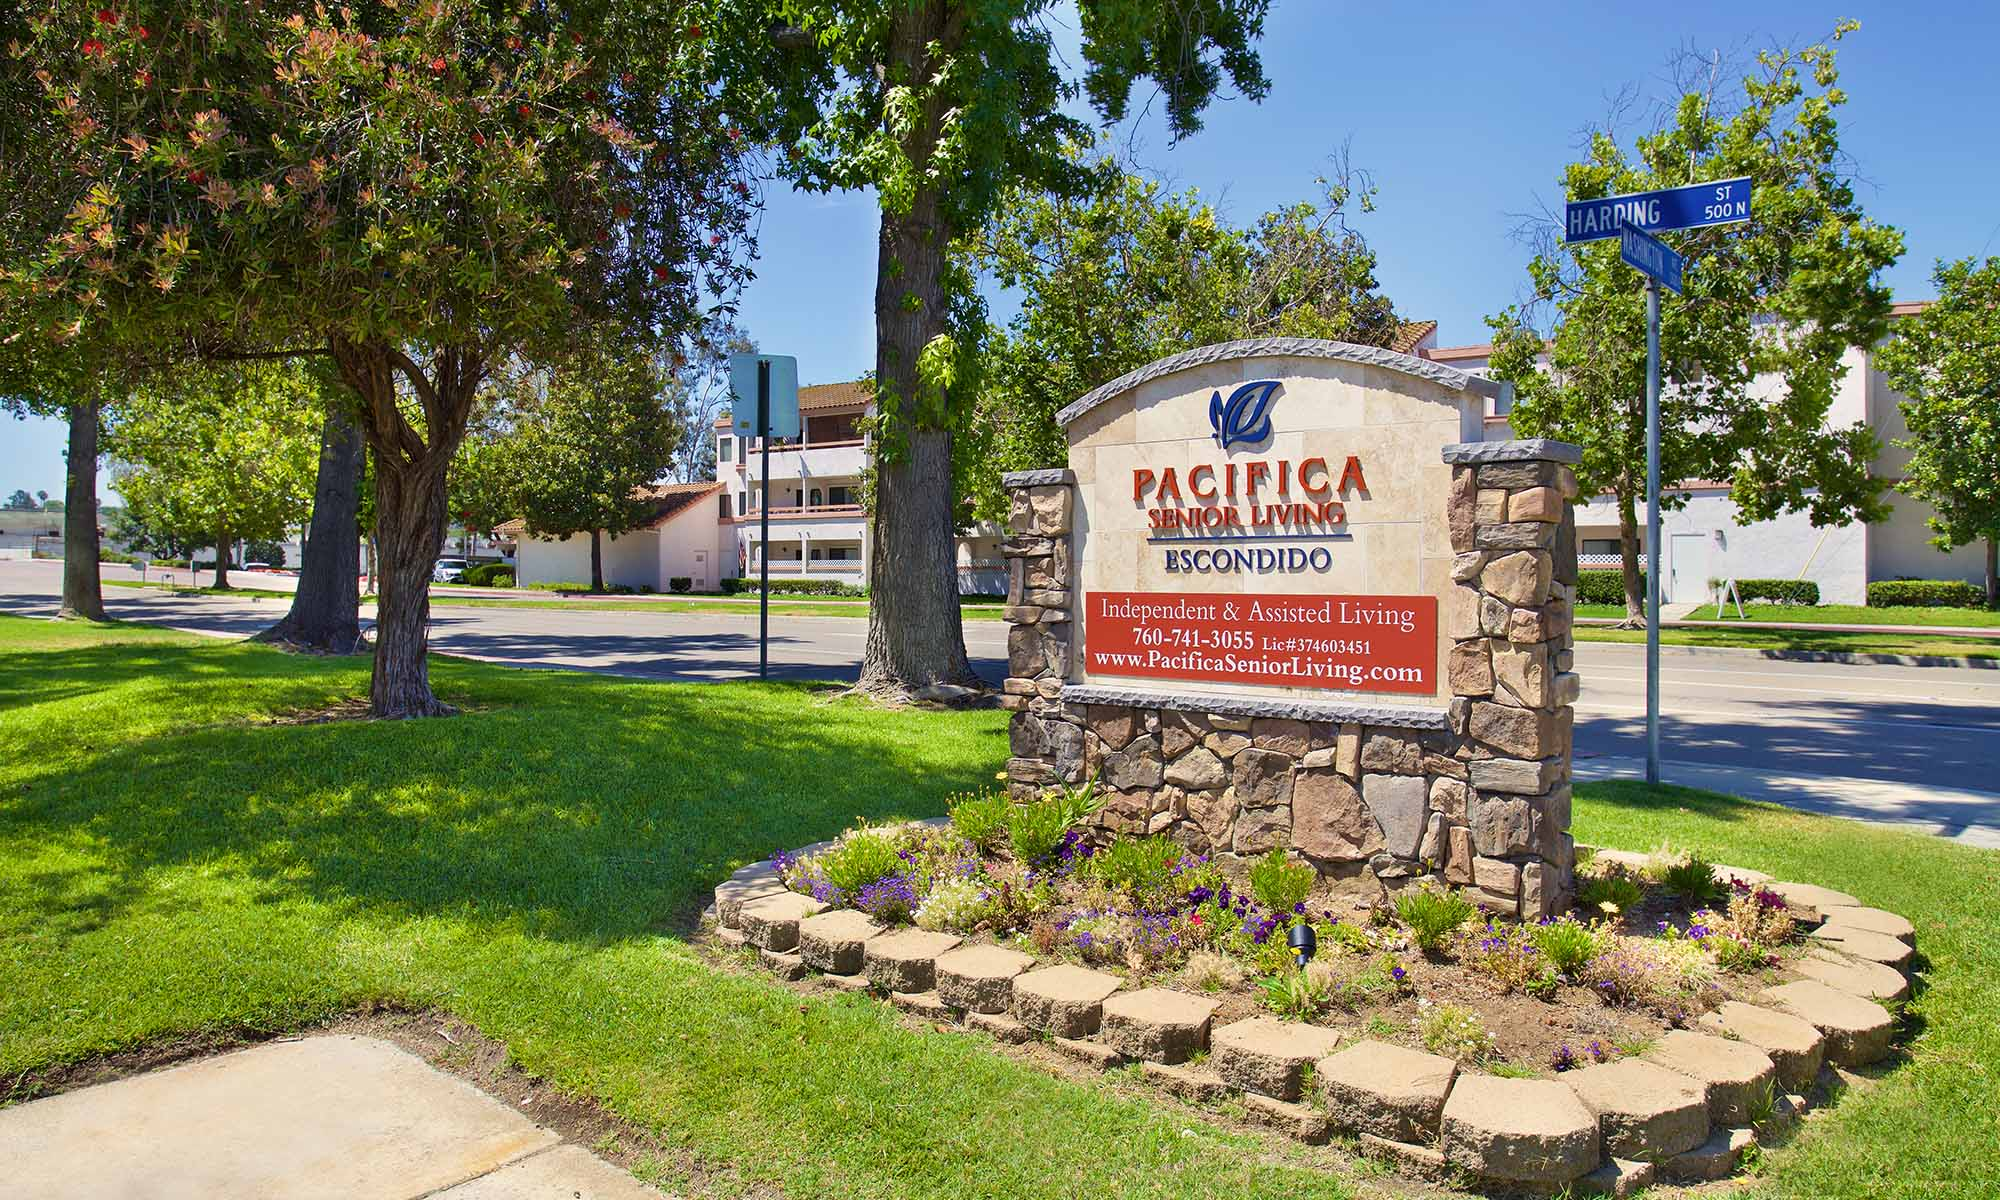 entrance to the Pacifica Senior Living Escondido community